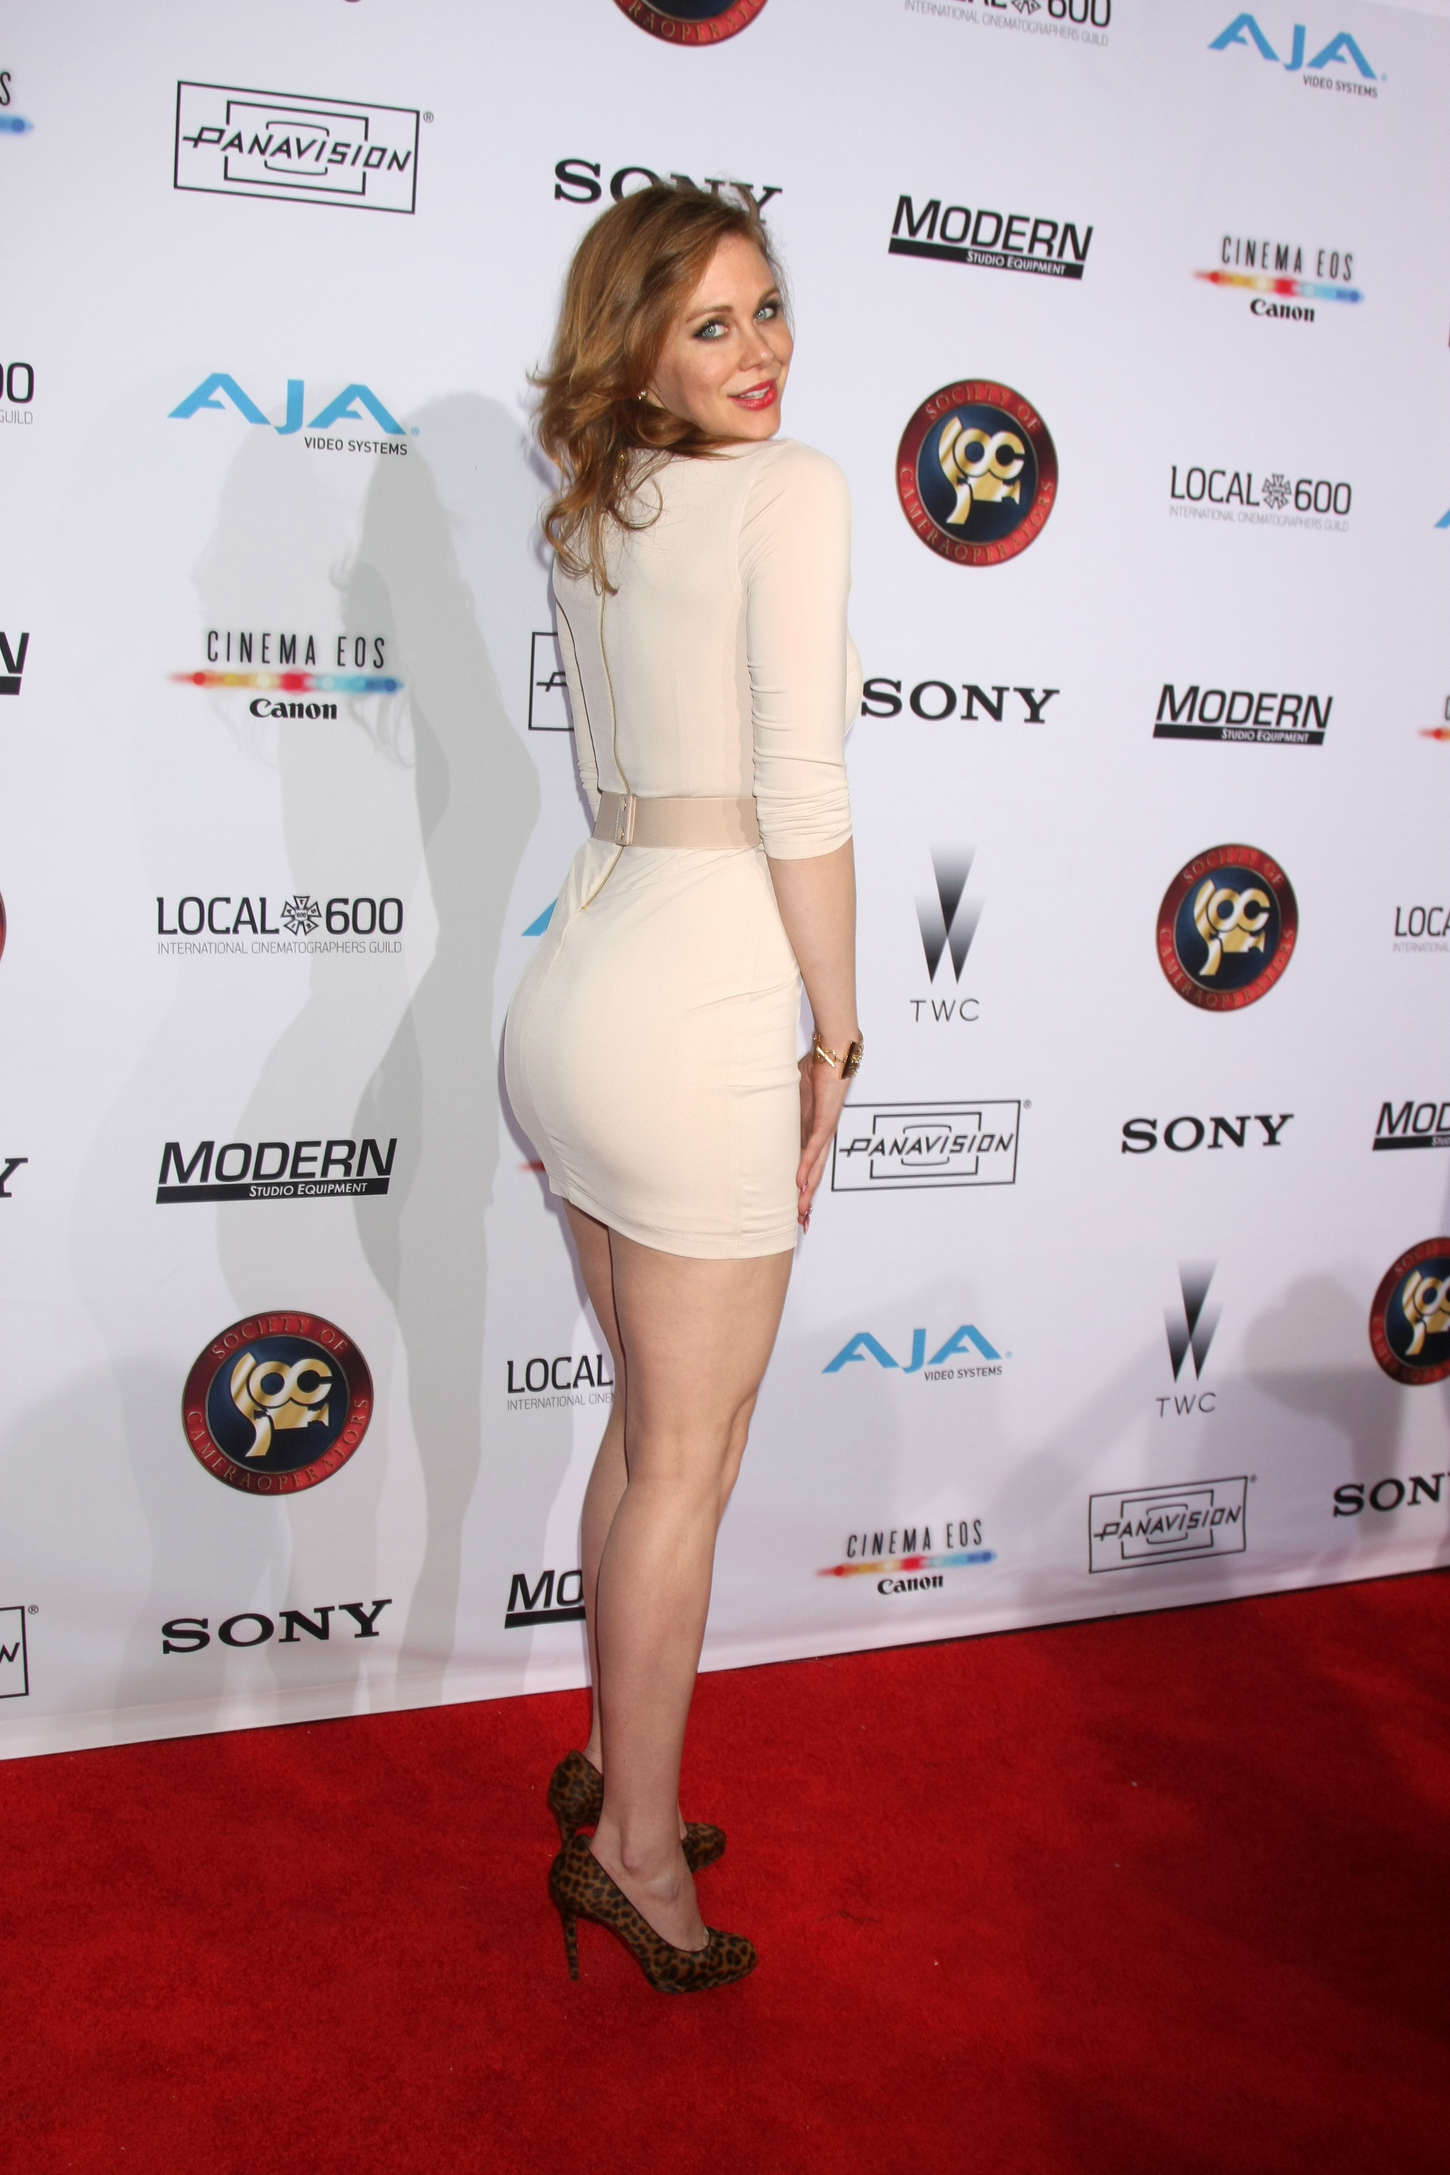 Maitland Ward 2015 : Maitland Ward: Society Of Camera Operators Lifetime Achievement Awards -01